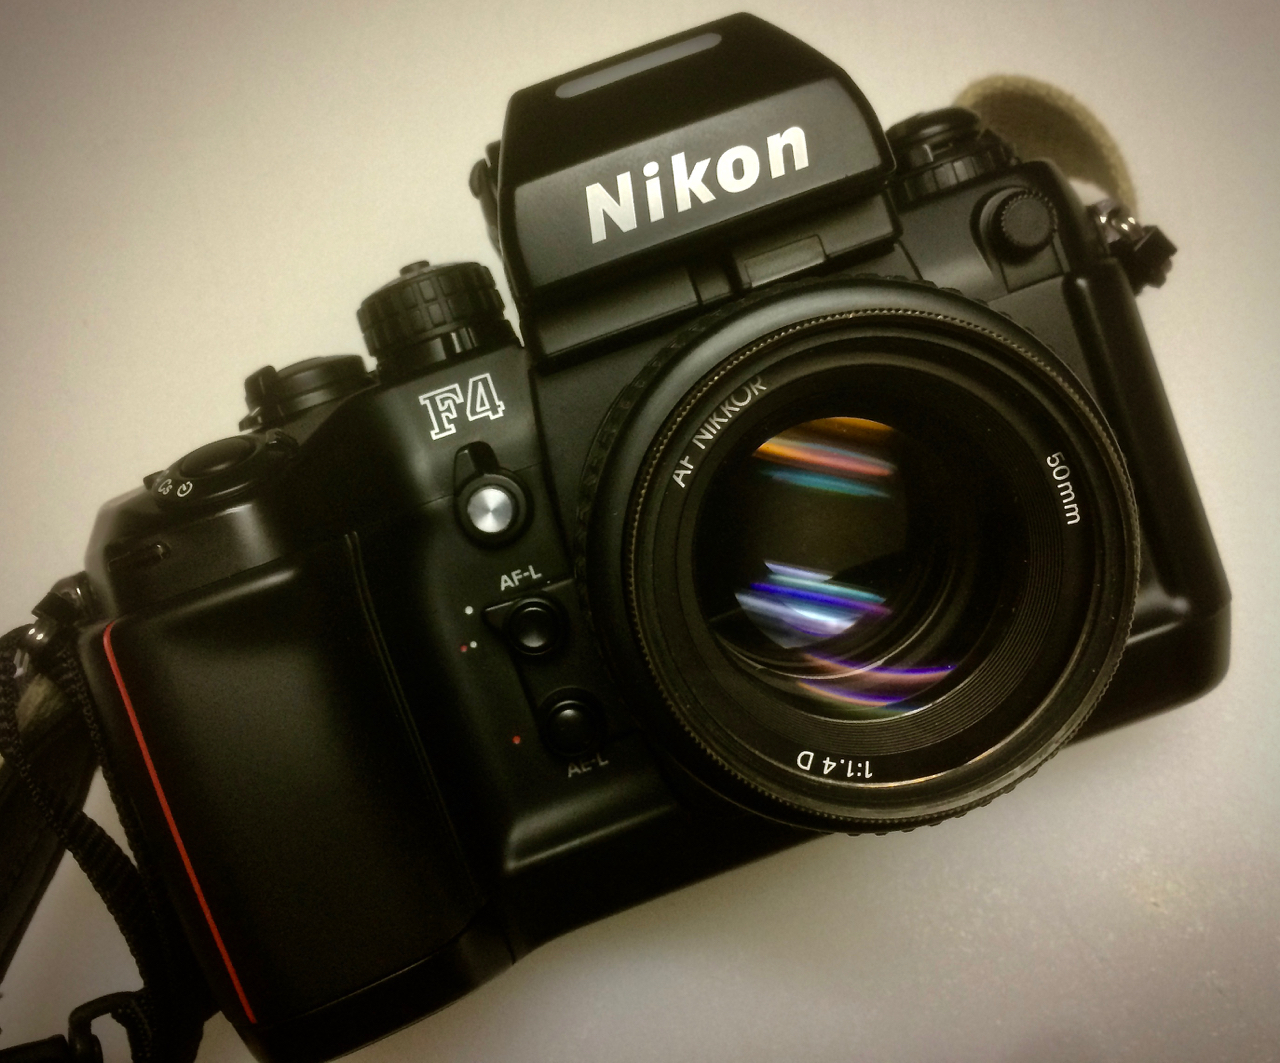 Nikon F4 with MB-20 grip and 50/1.4 AF-D lens